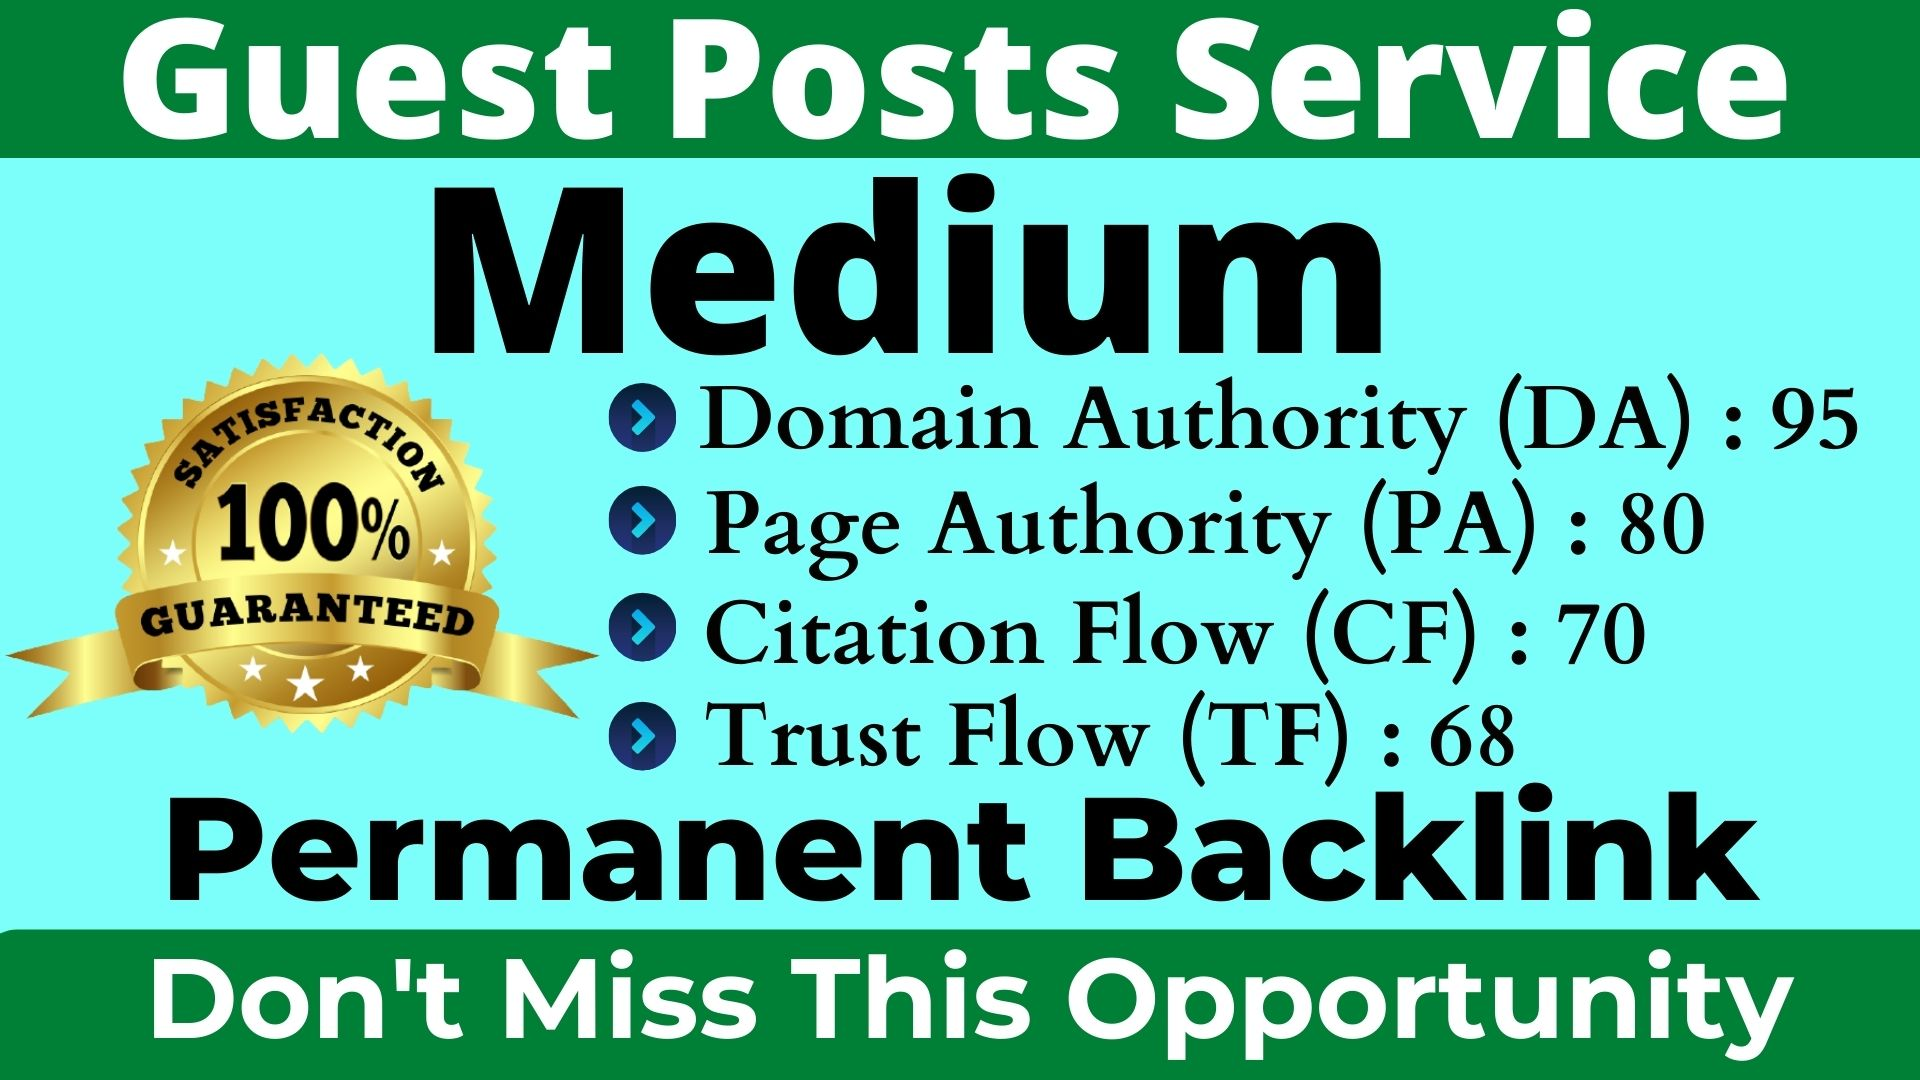 I Will Write and Publish A Guest Post On Medium DA 95, PA 80 With Permanent Backlinks Boost Your Site